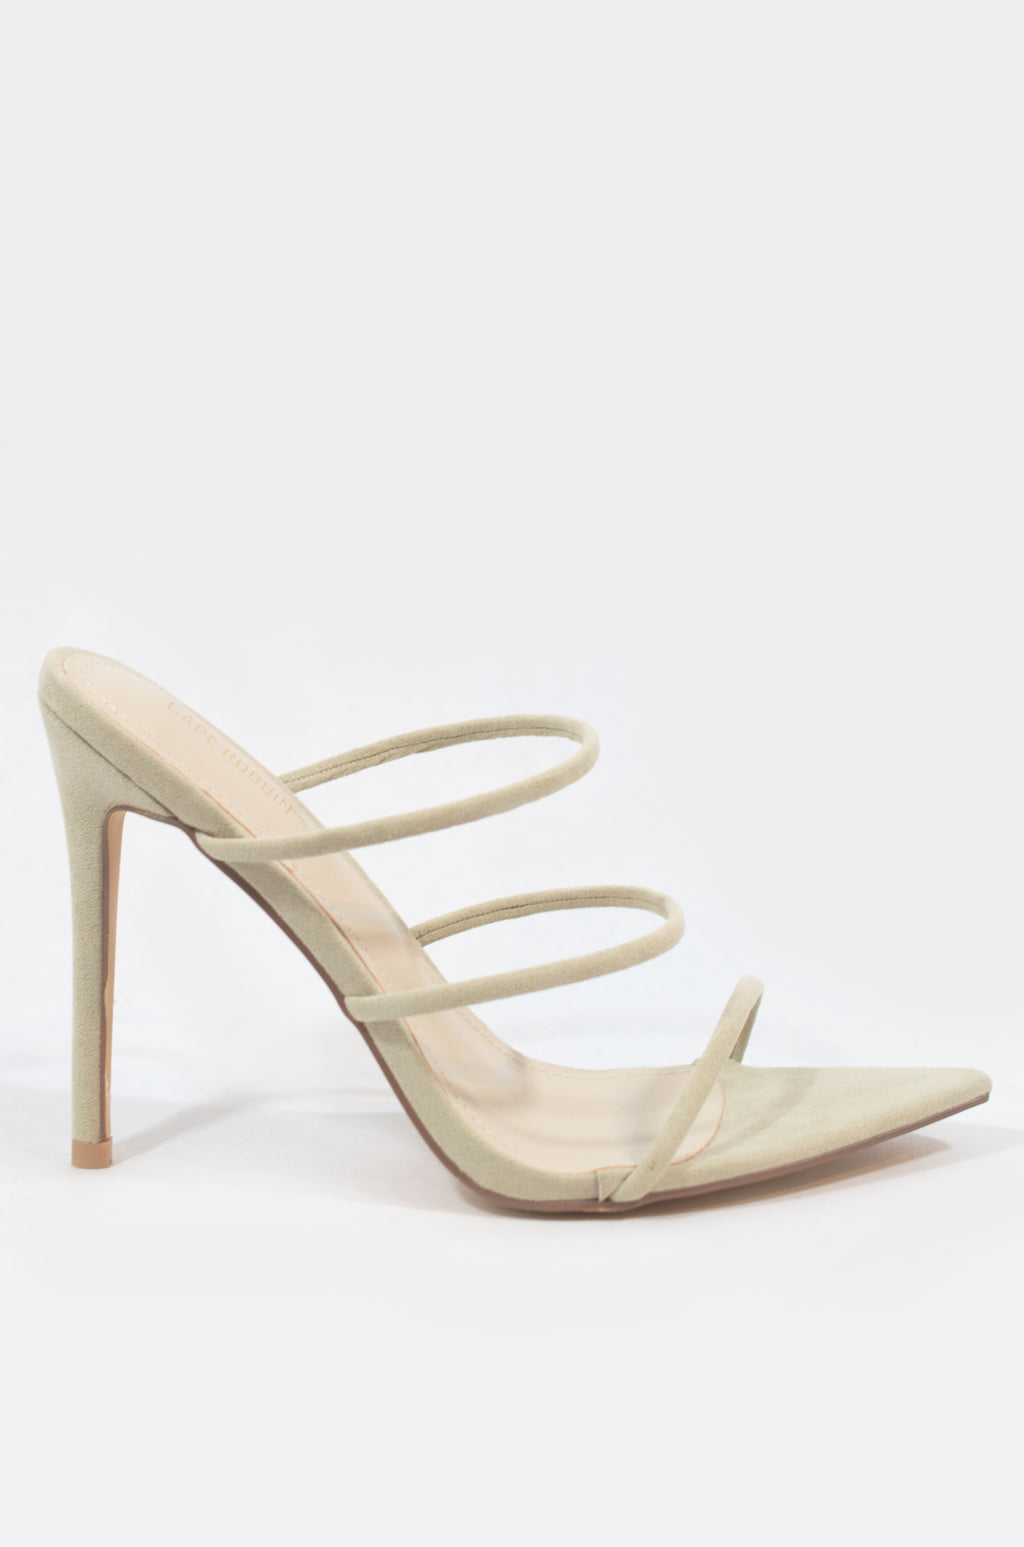 Unforgettable - Nude Lime Strappy Heels